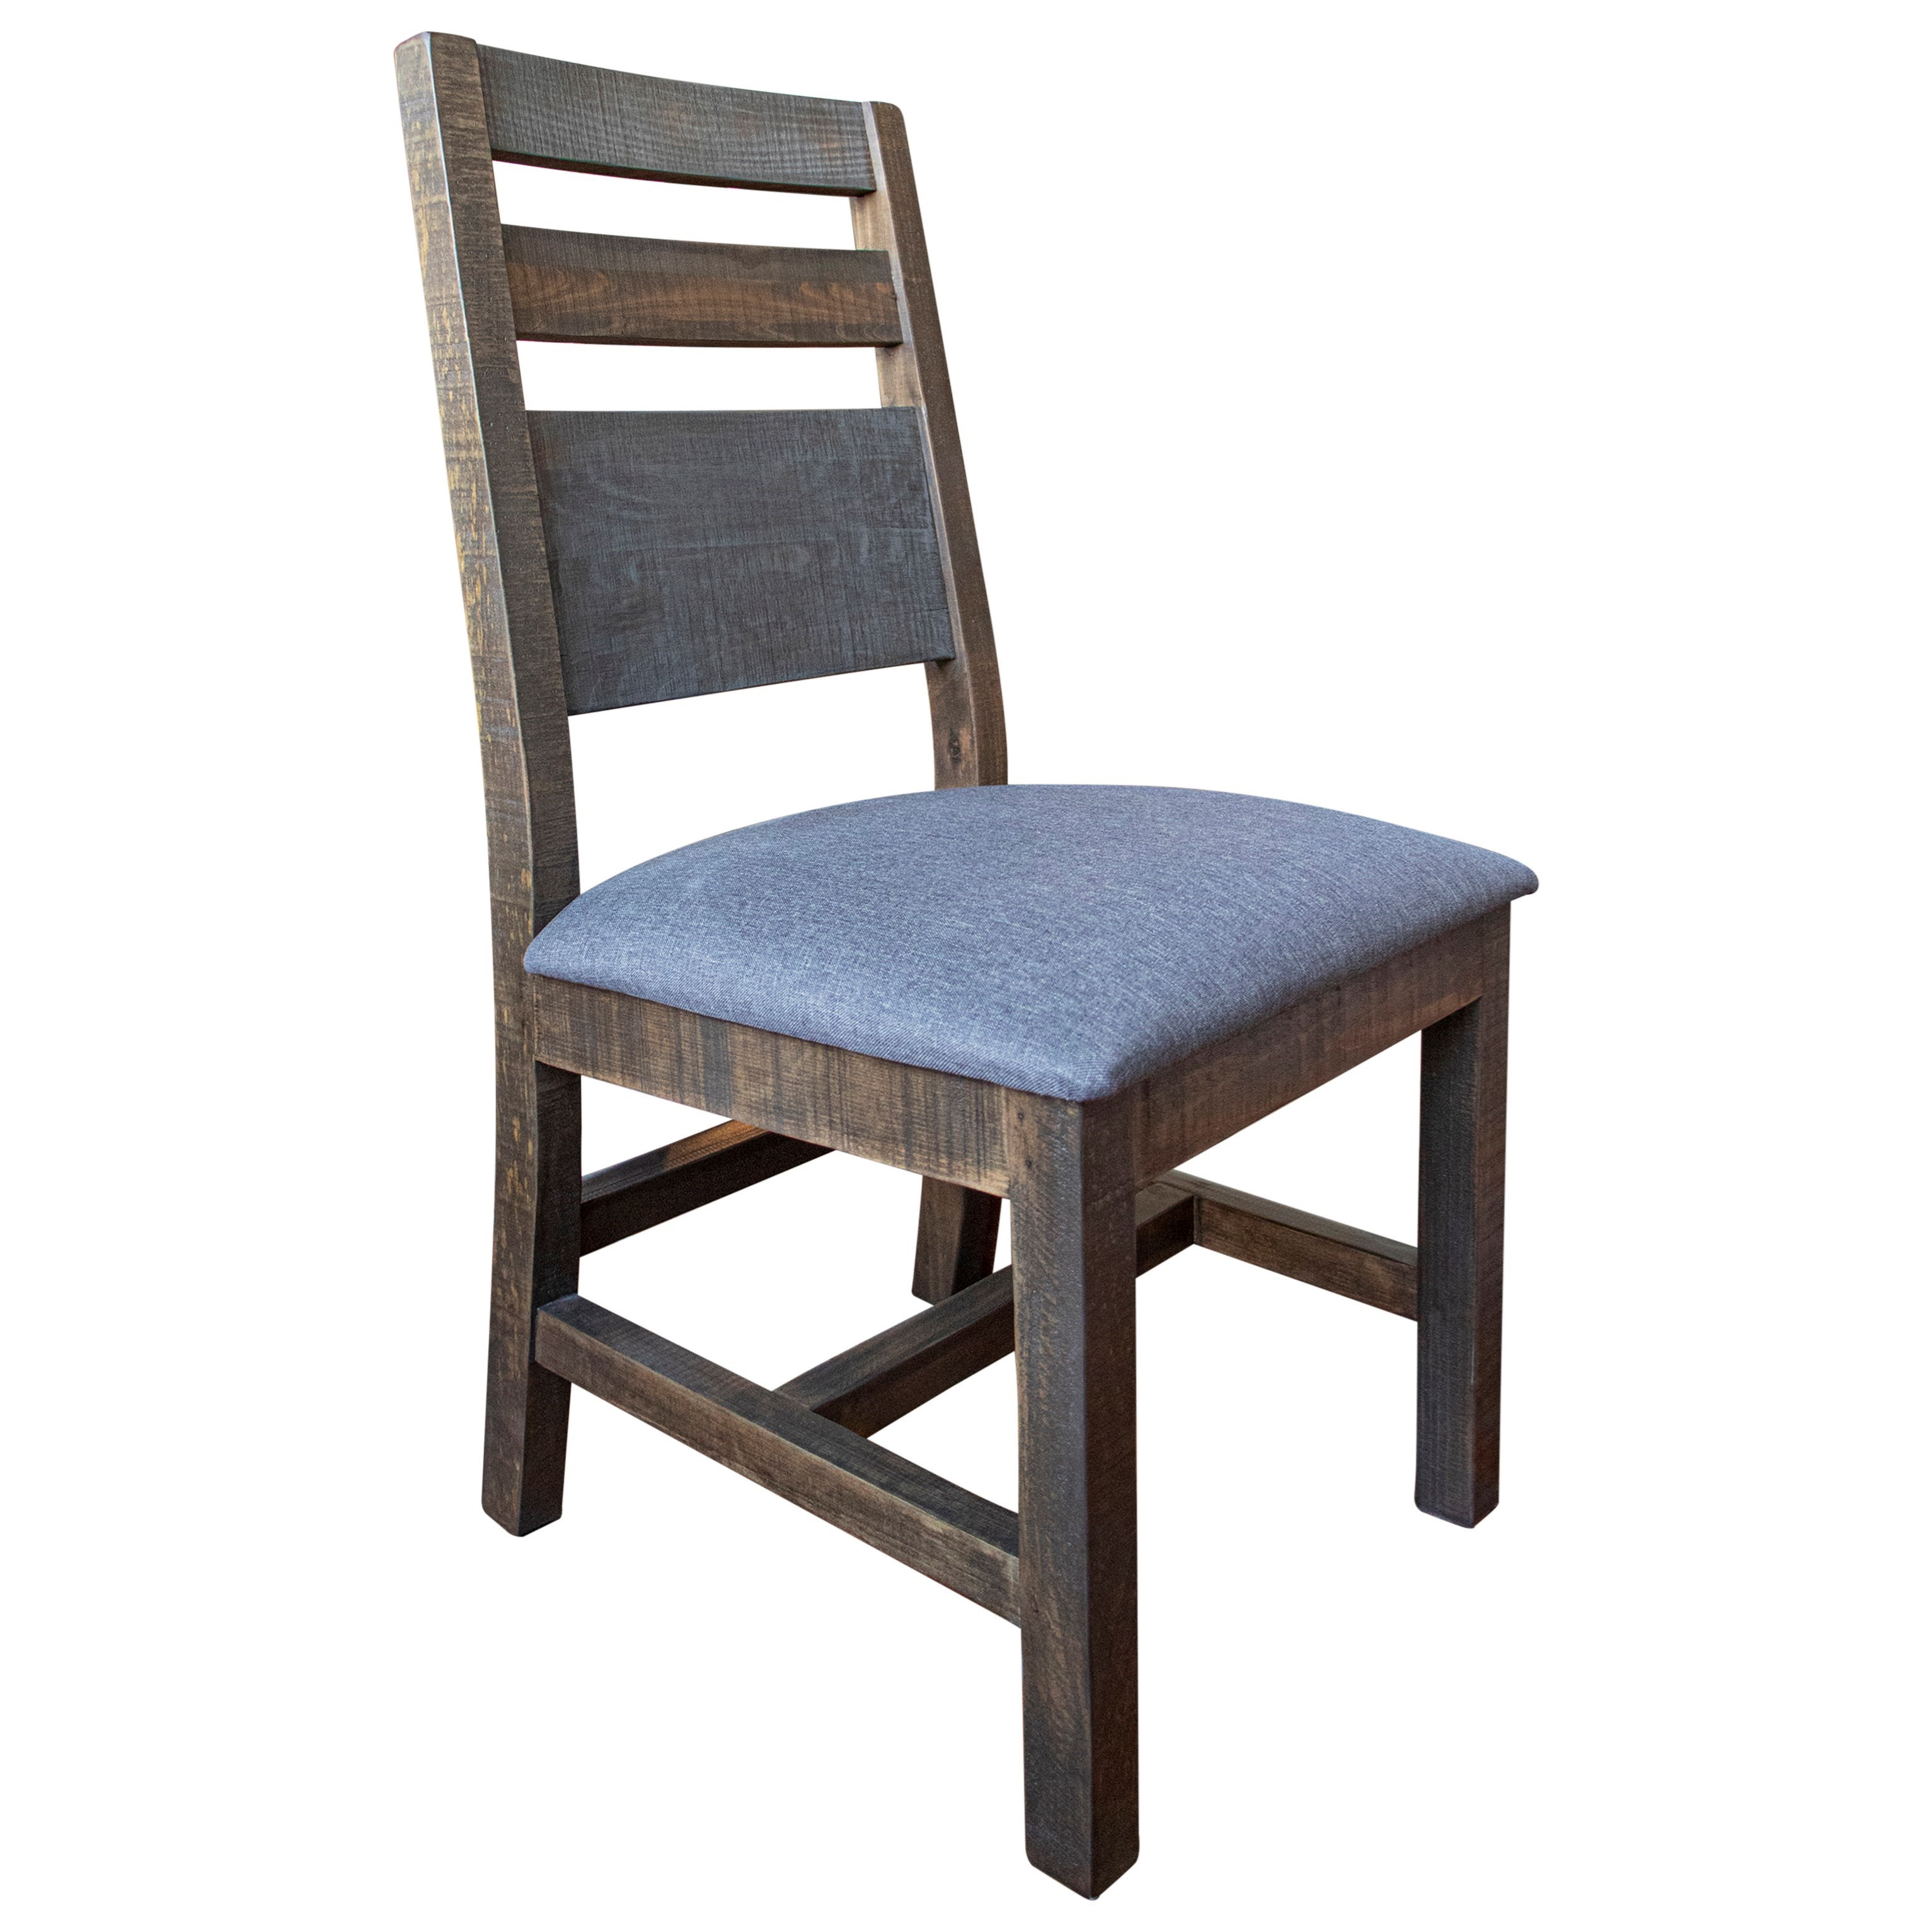 Antique Chair by International Furniture Direct at Furniture Superstore - Rochester, MN